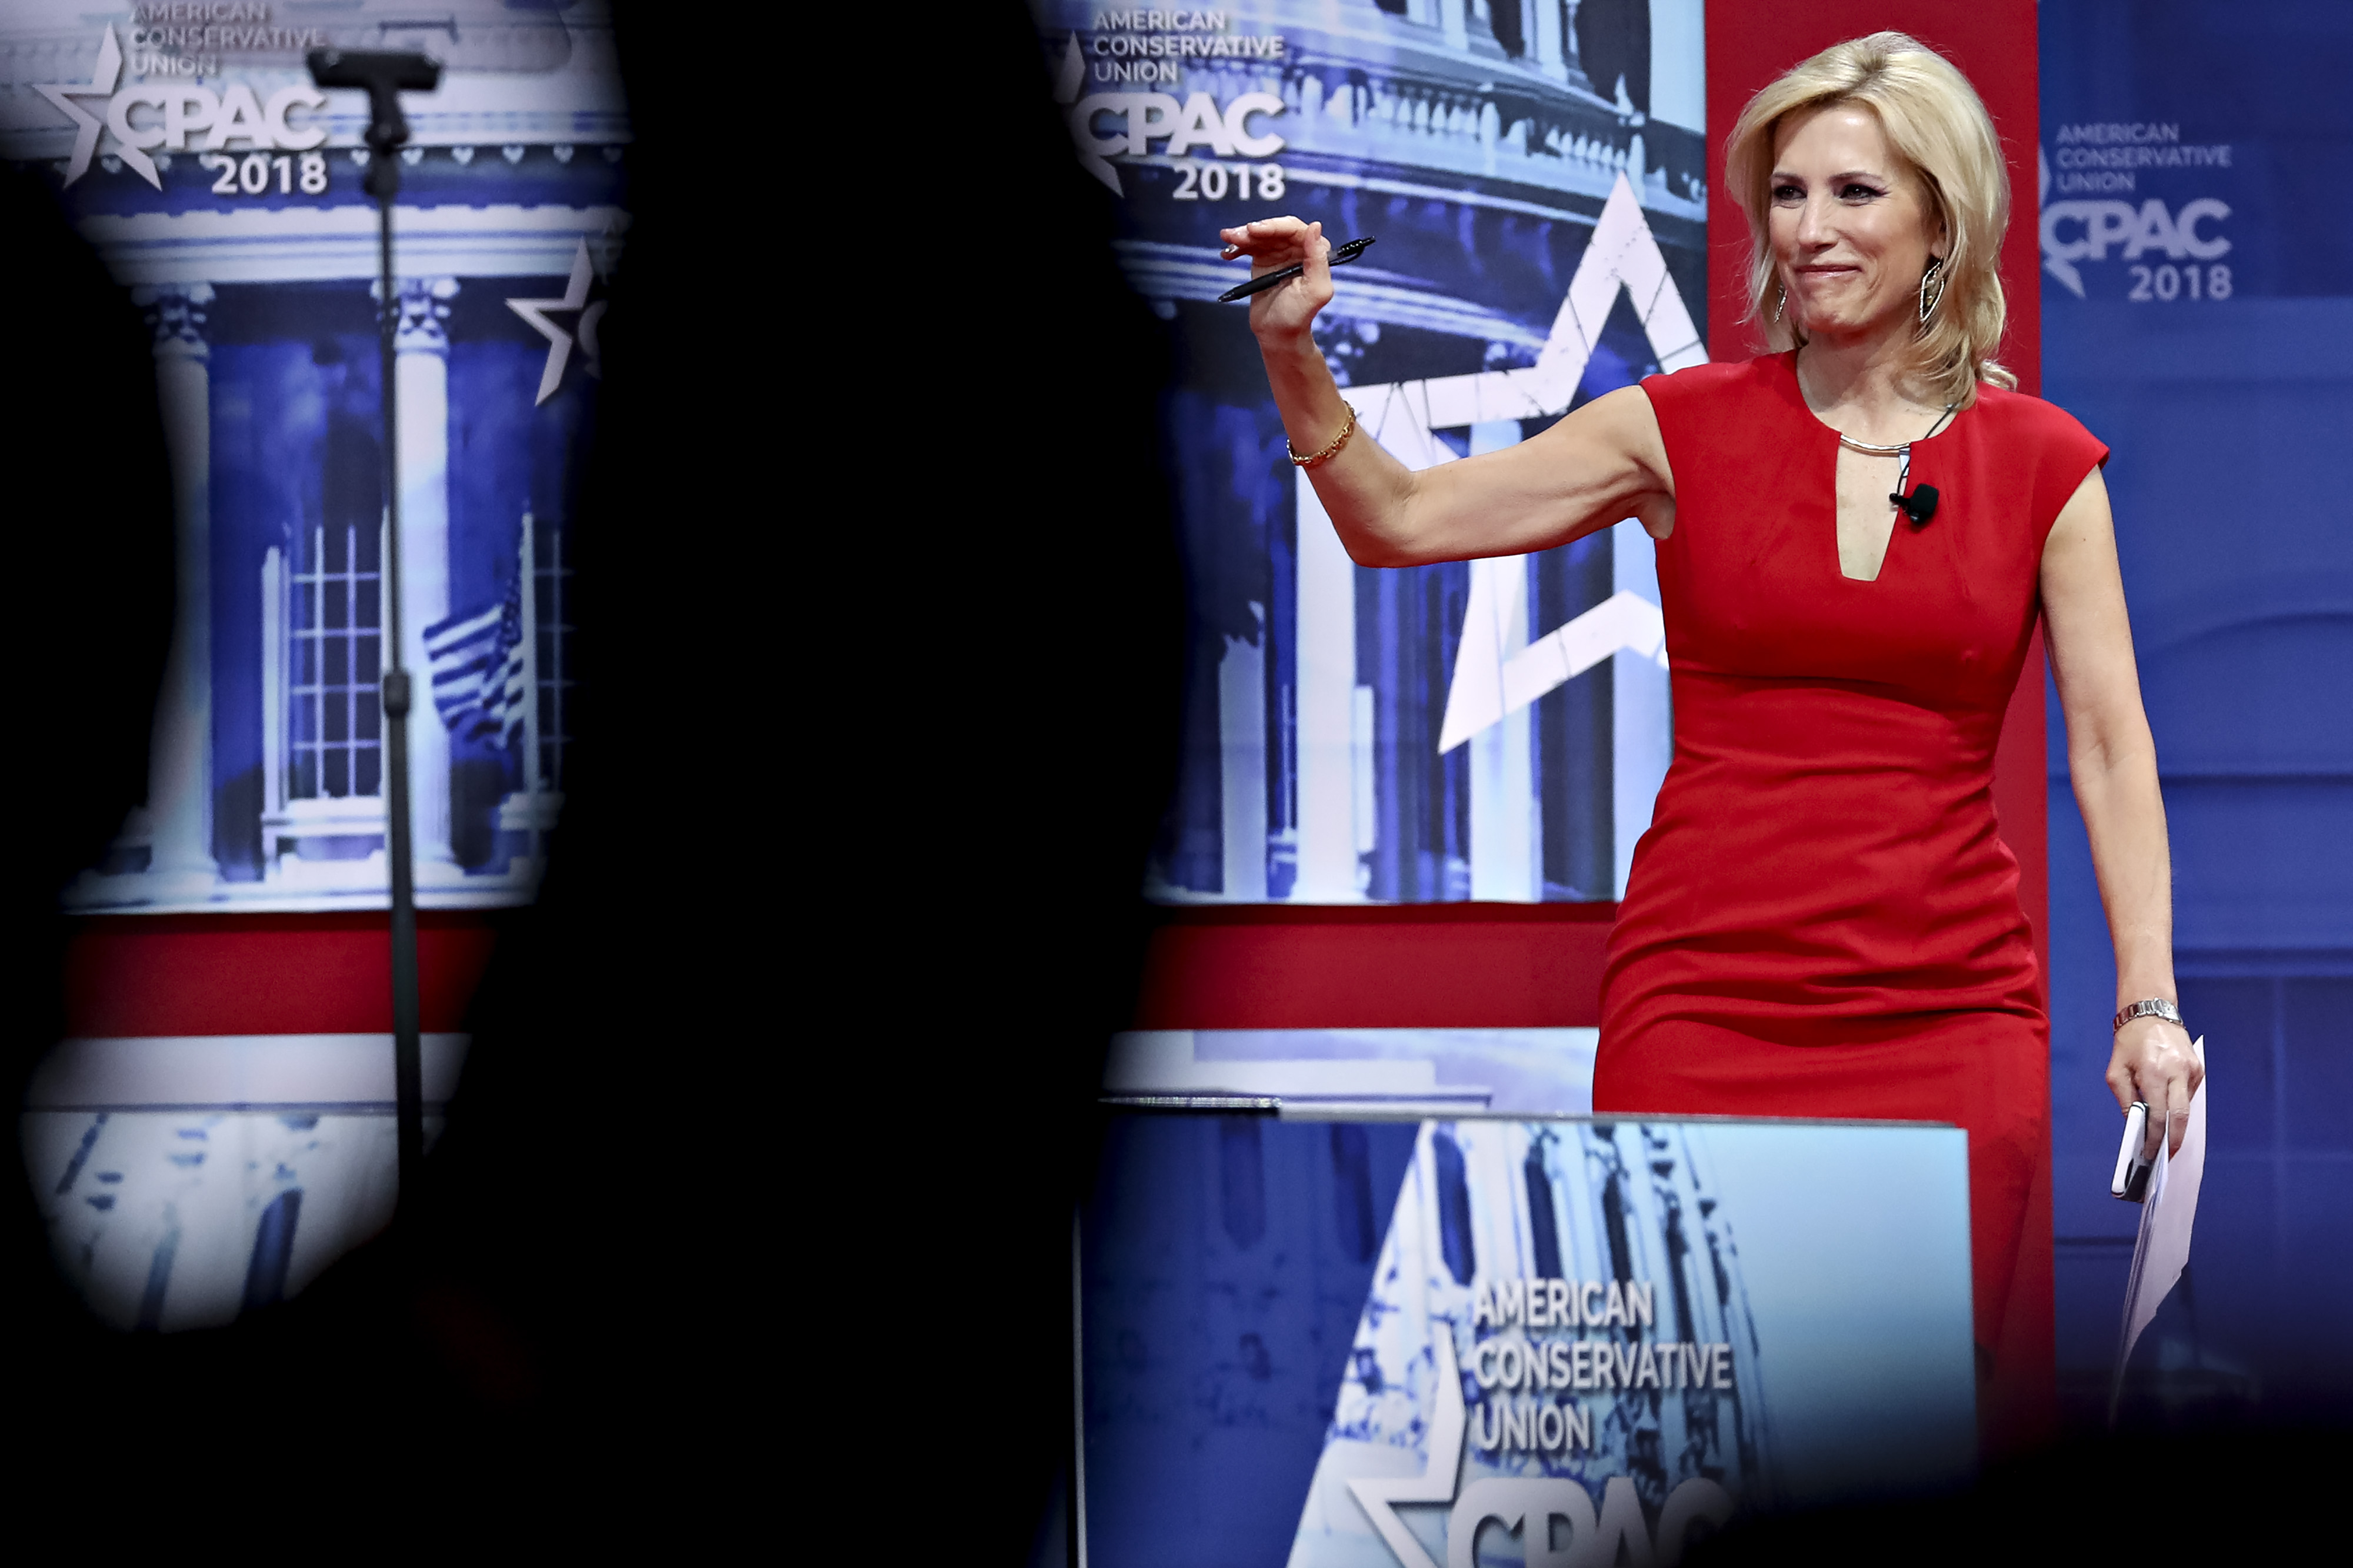 Laura Ingraham appears on-stage at CPAC, waves to crowd